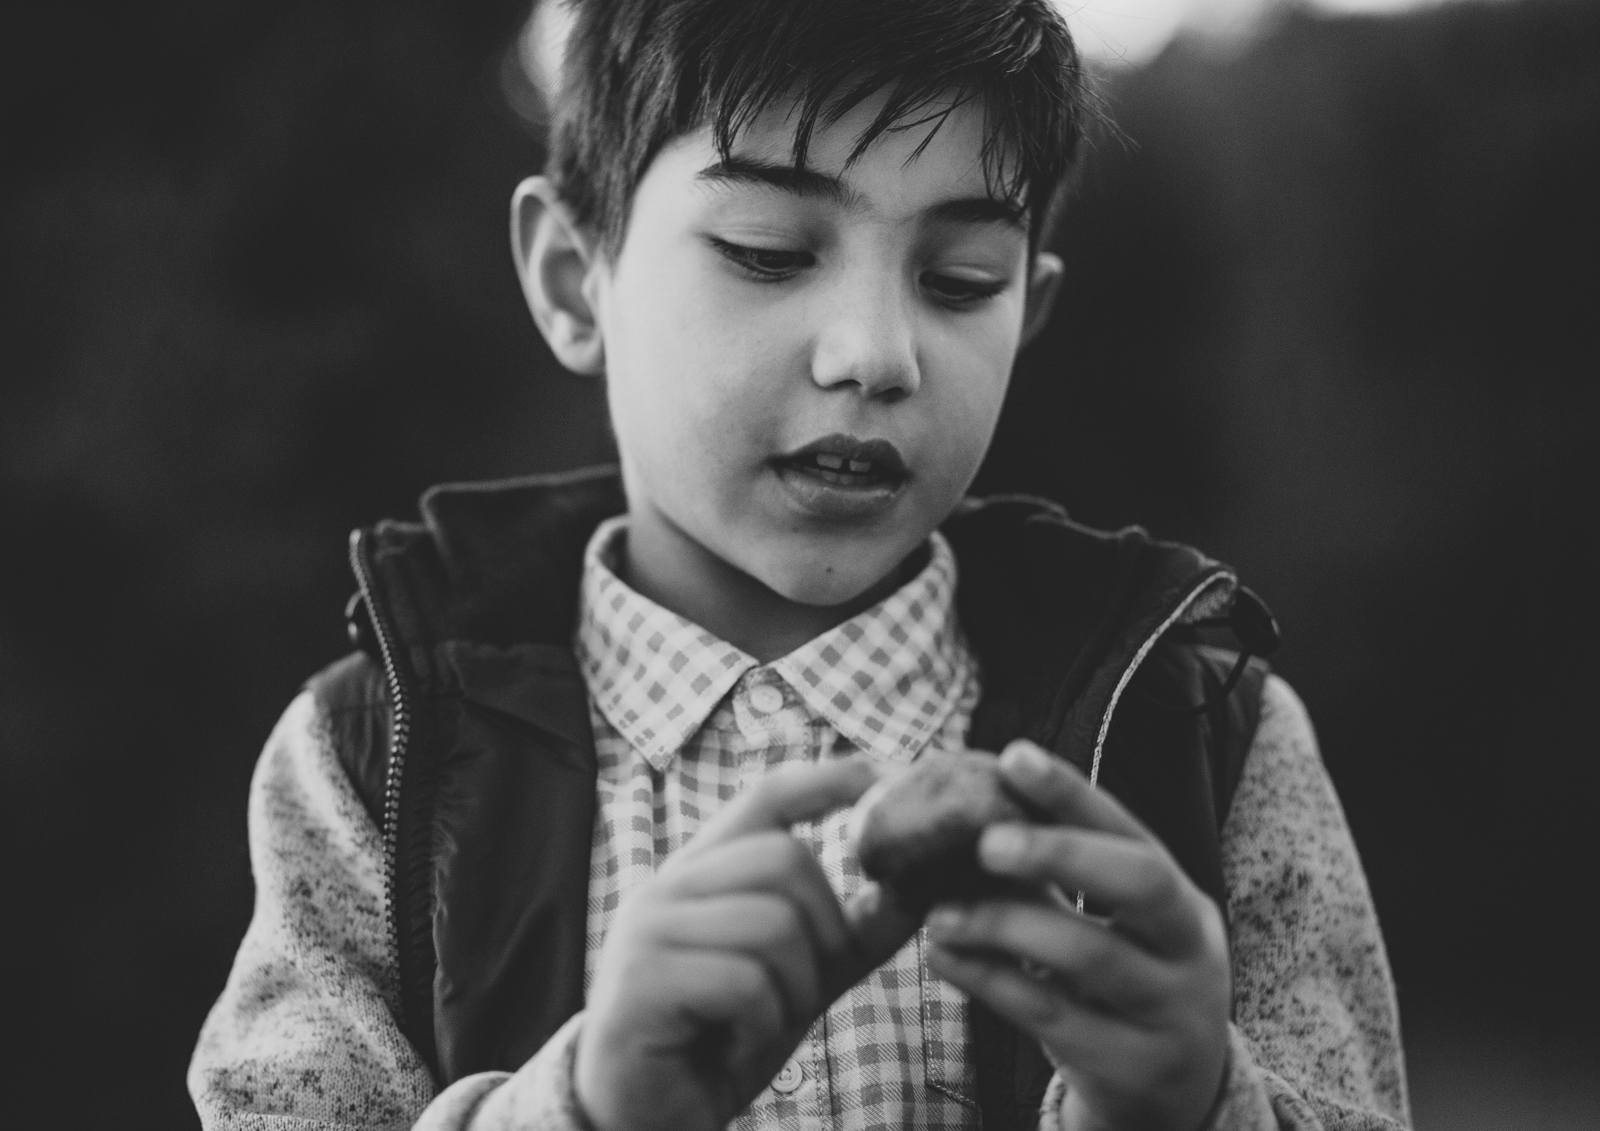 Young boy playing with a rock